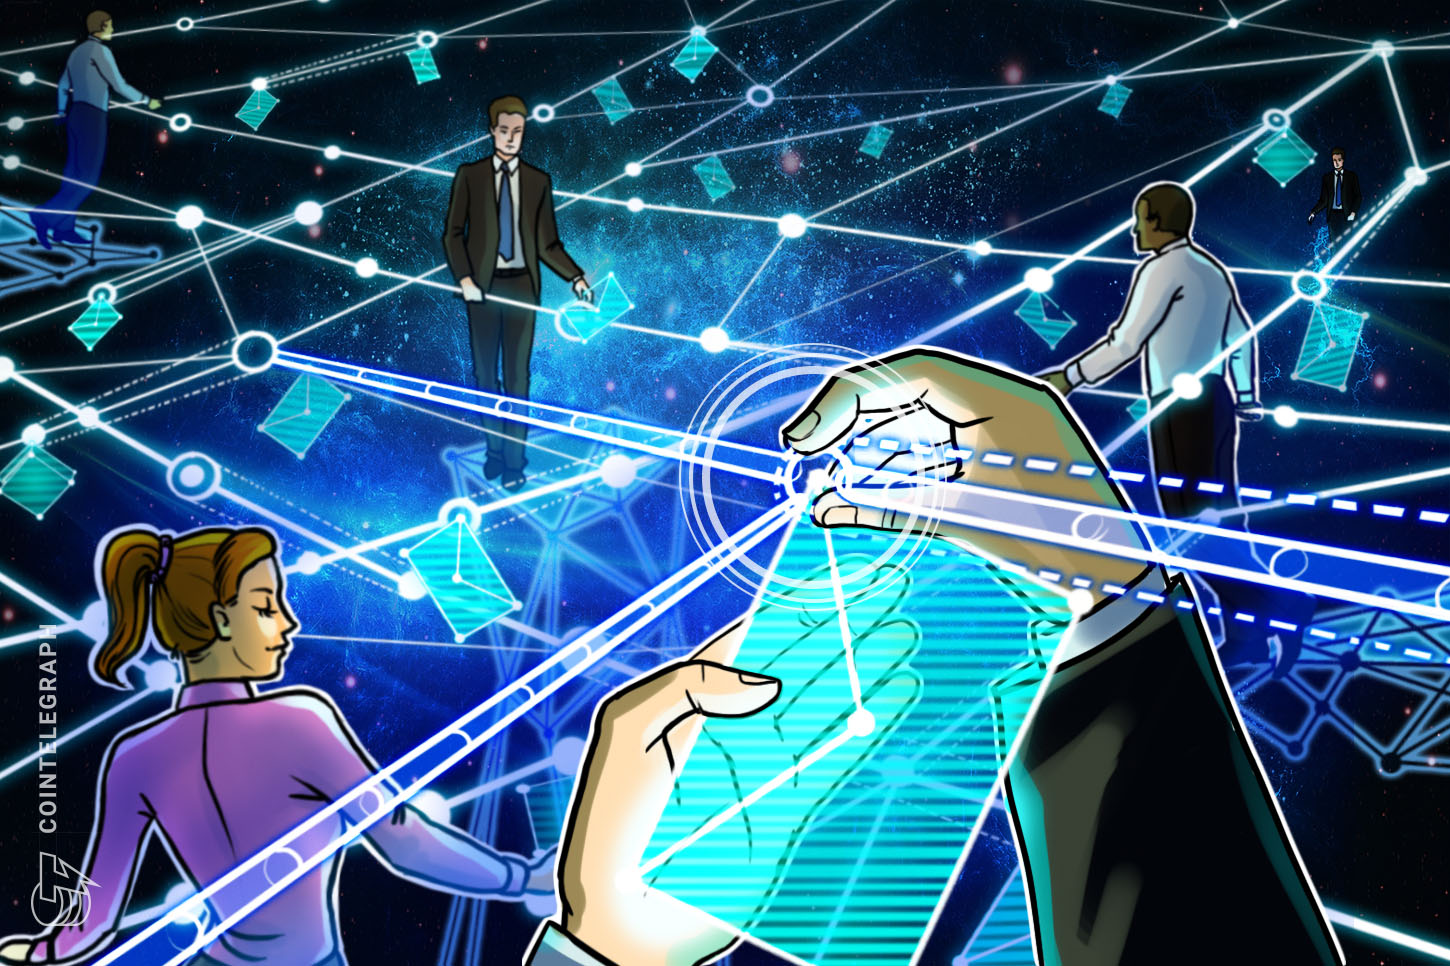 Stacks (STX) price rallies 195% after revealing plans to bring DeFi to Bitcoin